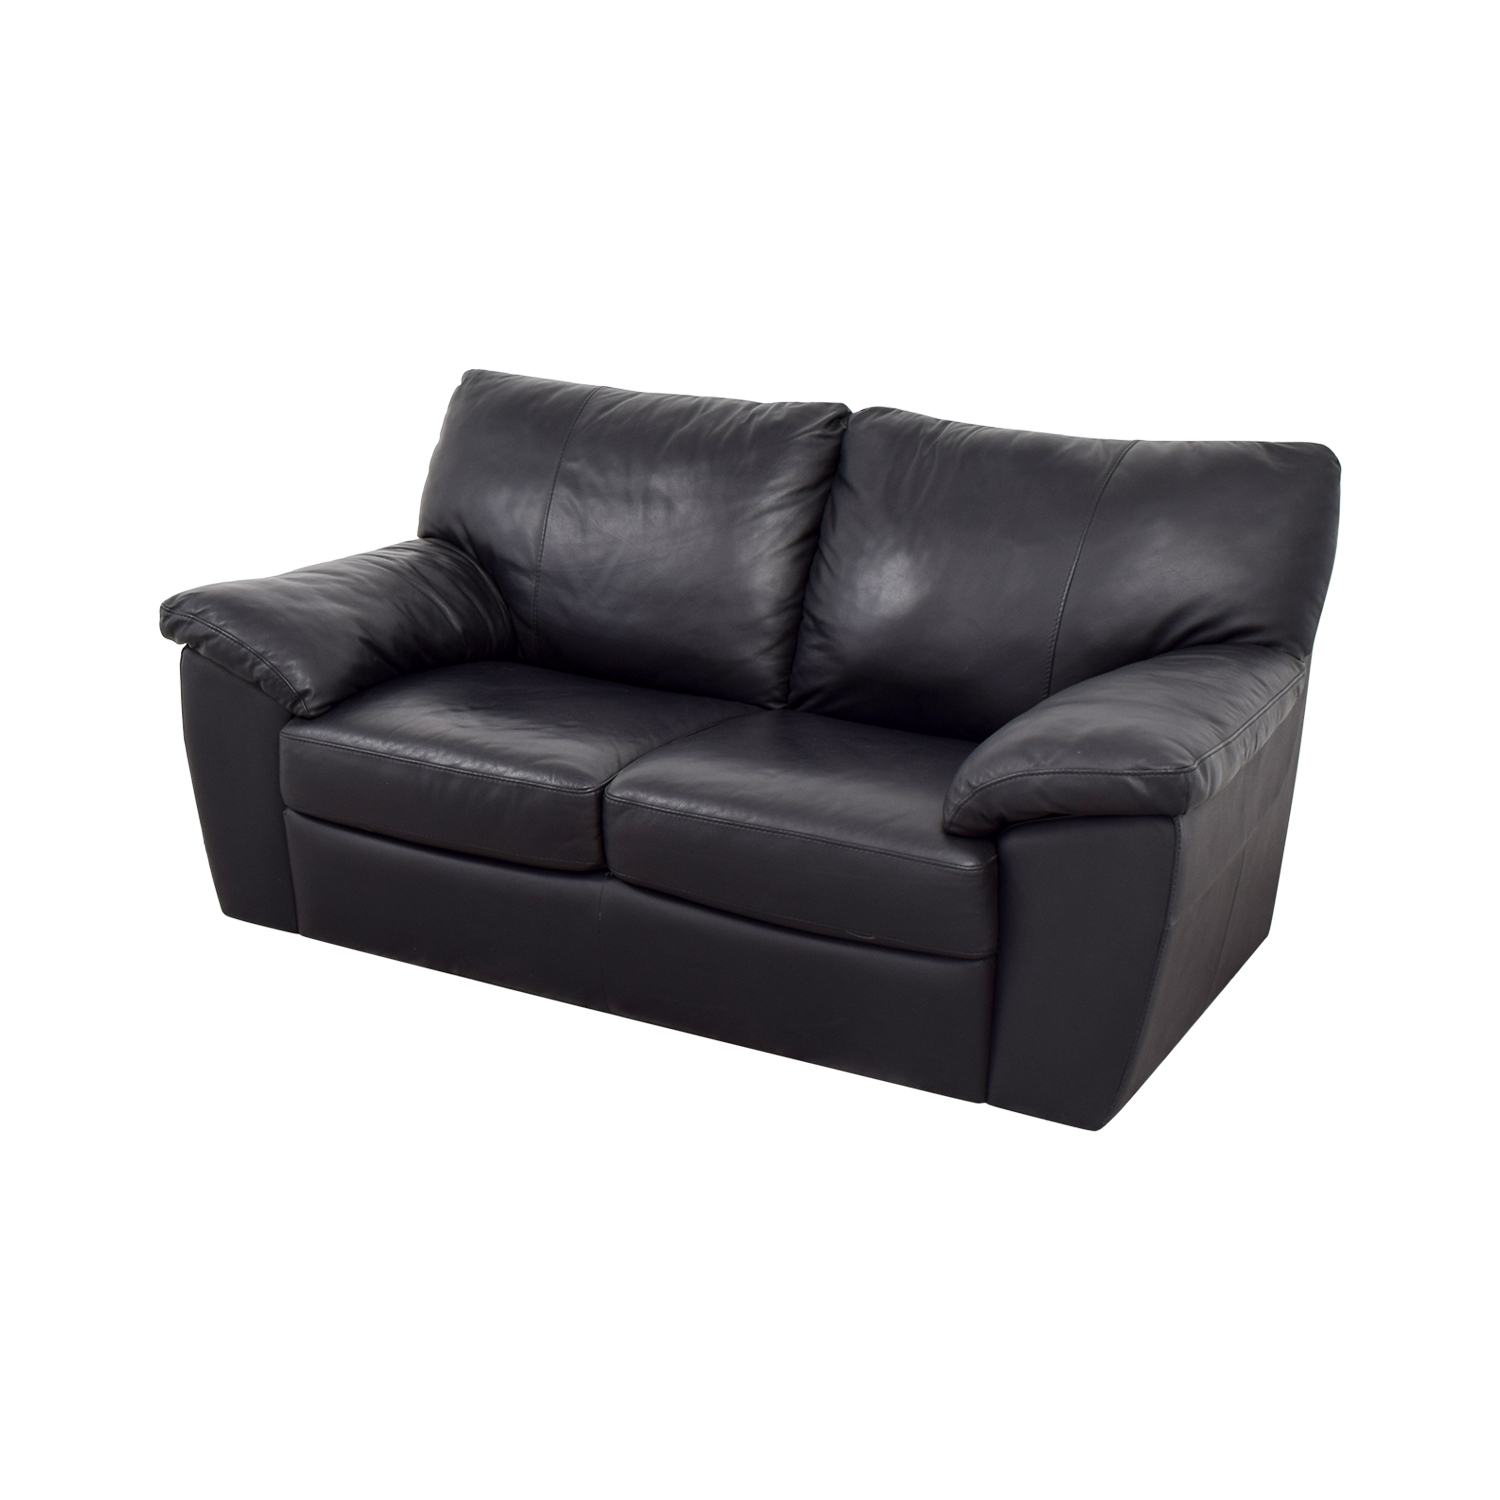 ikea sofa leather stylish ikea leather sofa best ideas